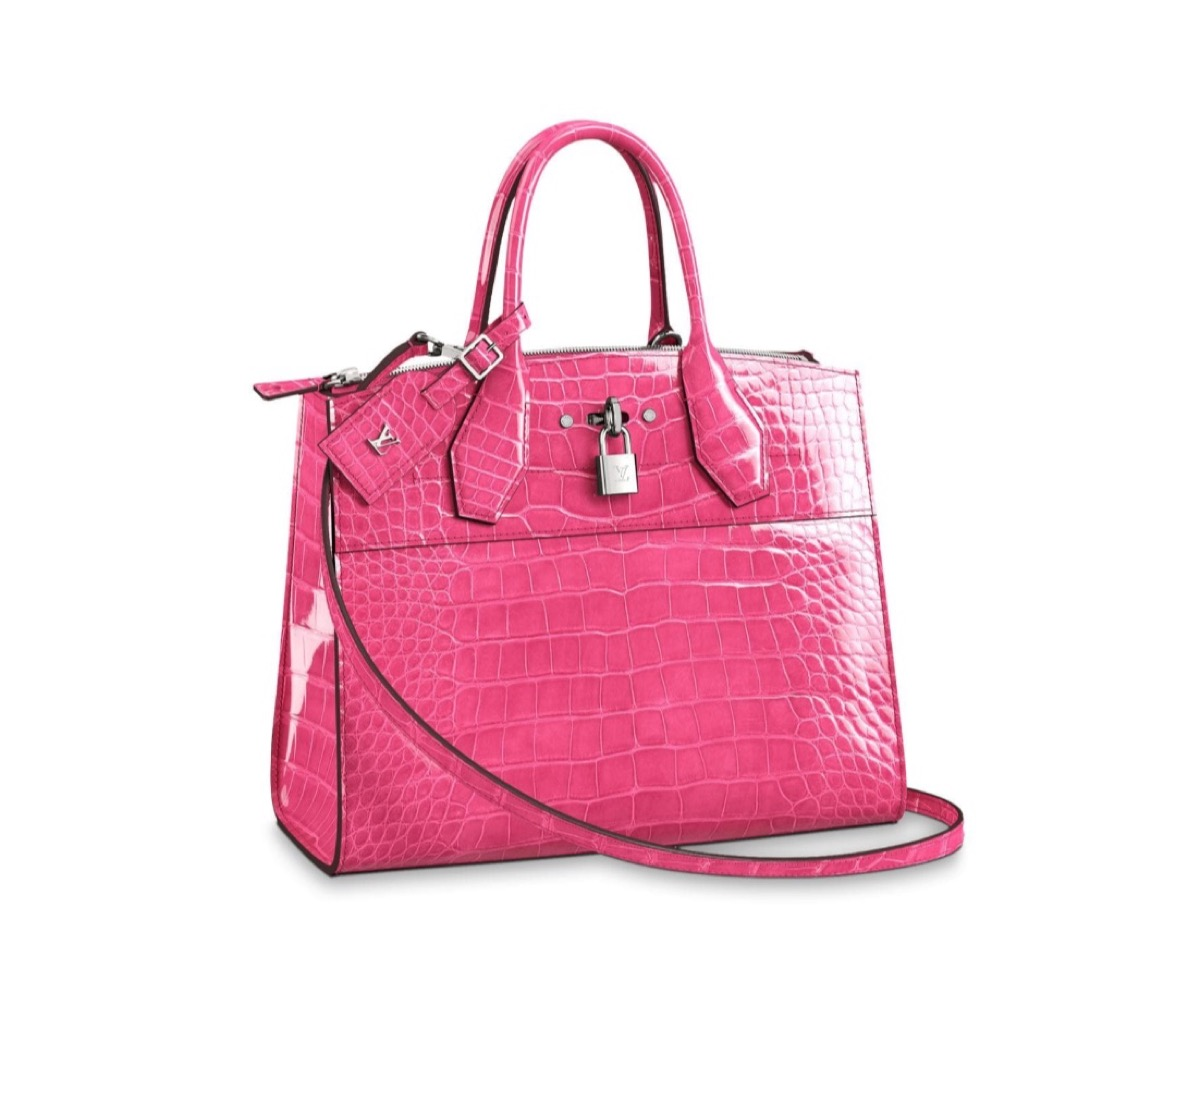 Louis Vuitton Crocodile Skin Bag Most Expensive Things on the Planet